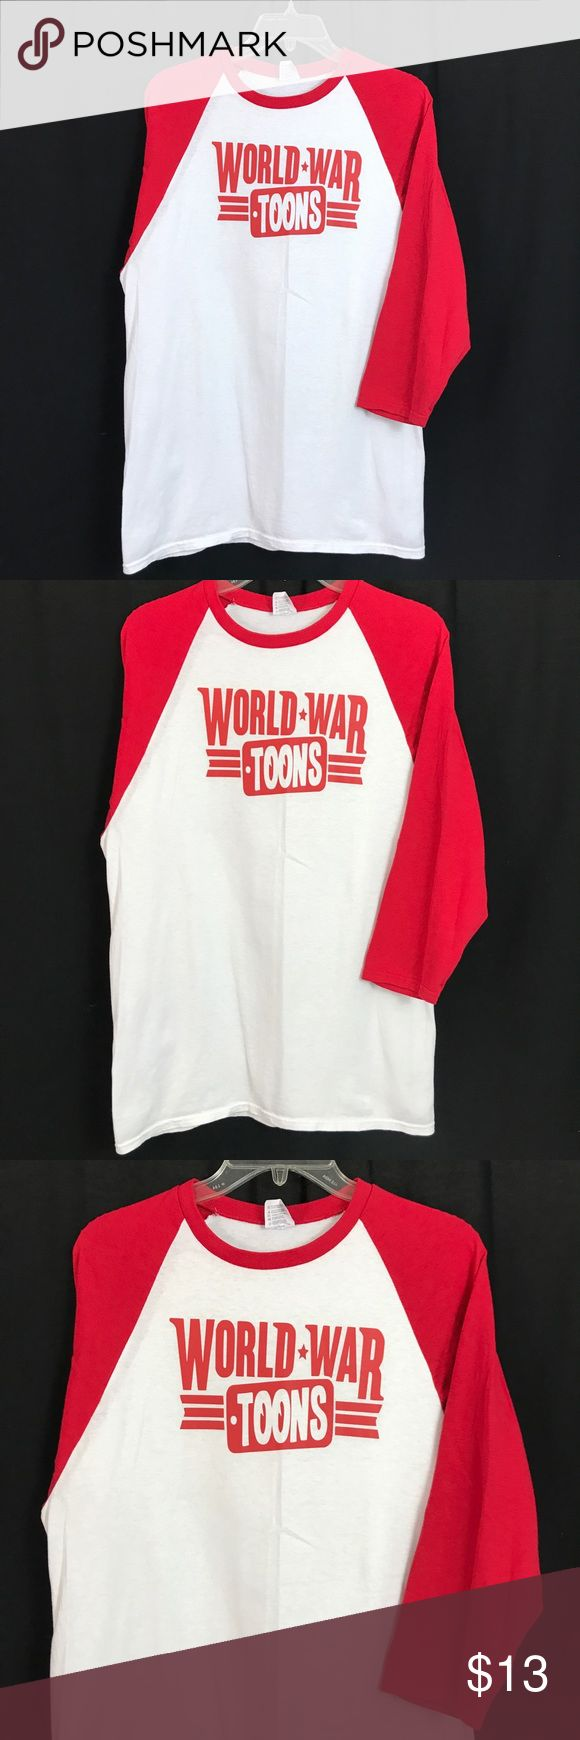 World War Baseball Graphic Tee Shirt Medium Red Men's Medium - World War Toons - Red/White Baseball T Shirt - excellent condition - FAST SHIPPING! anvil Shirts Tees - Long Sleeve